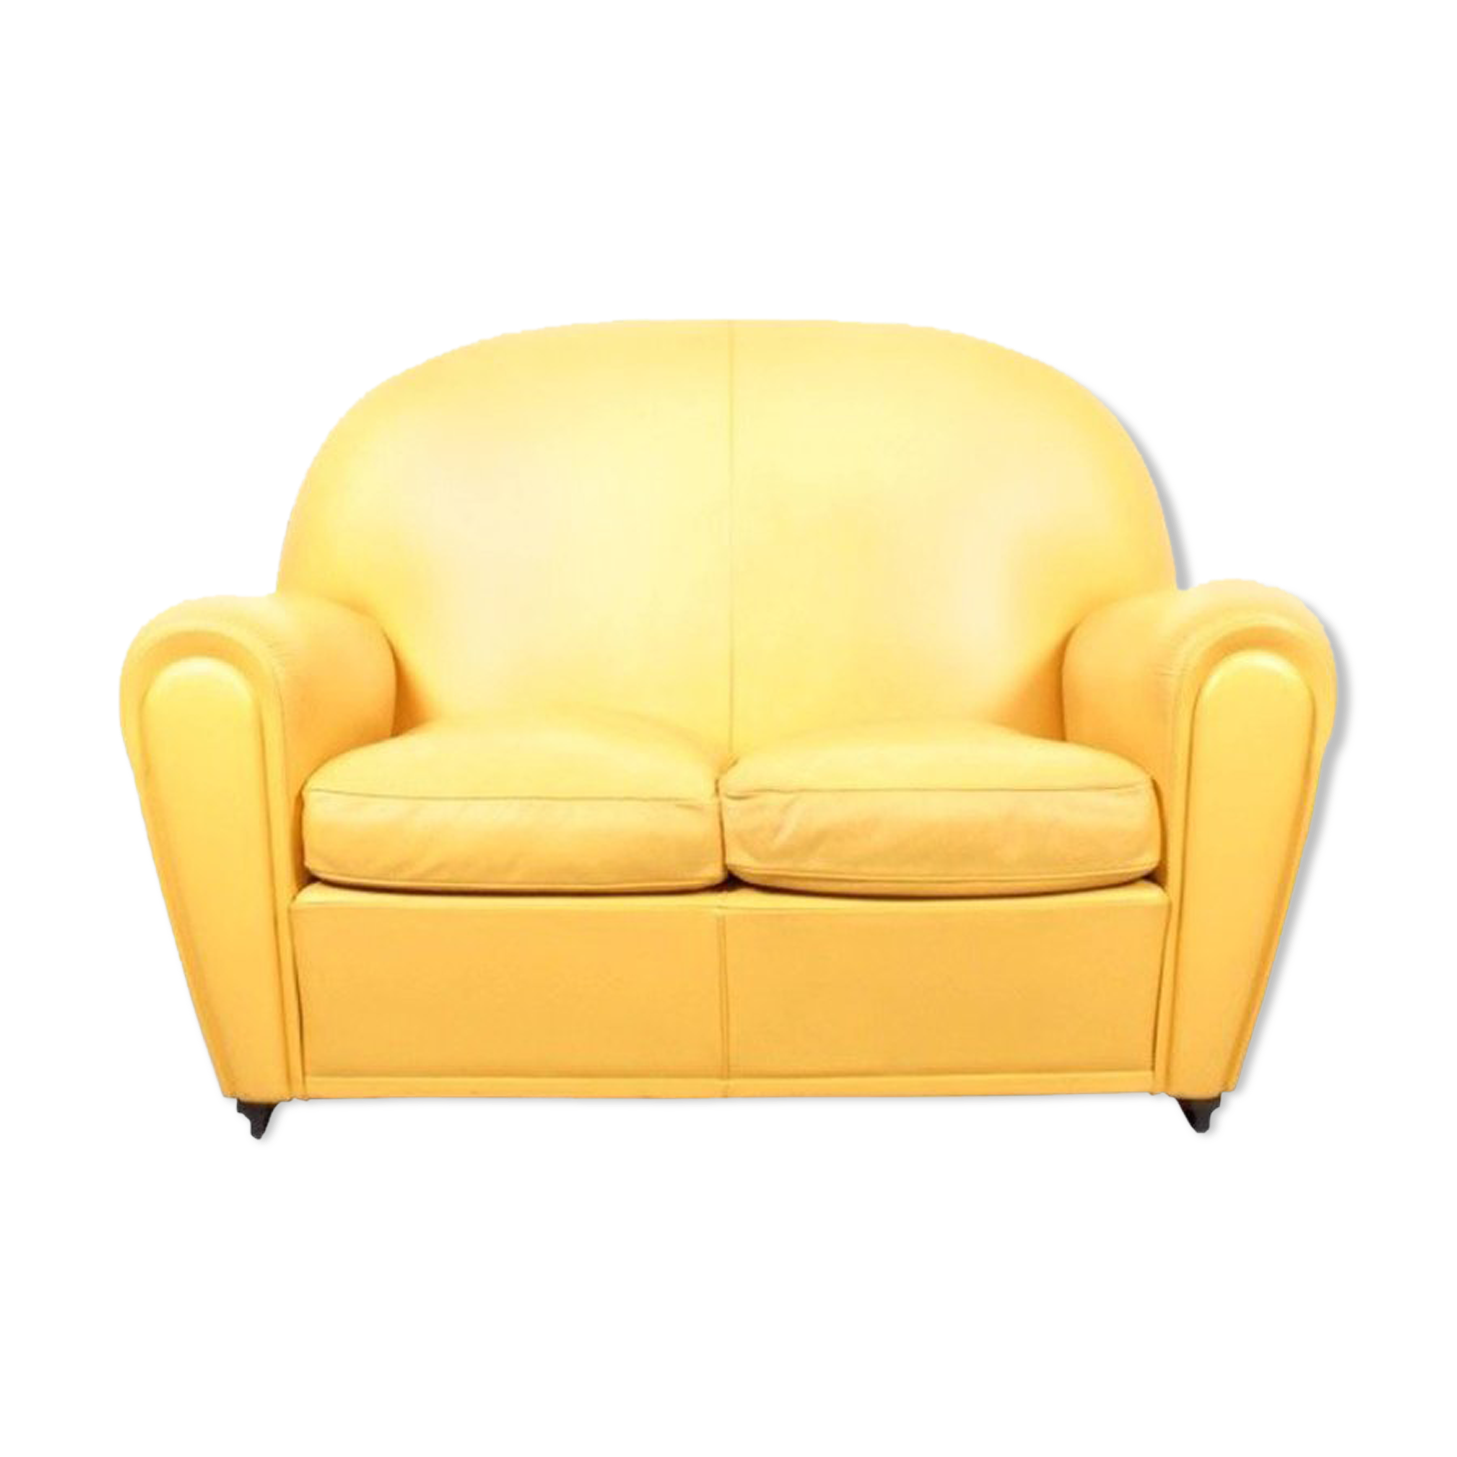 canap cuir jaune perfect salon canaps cuir relaxation mecanique with canap cuir jaune. Black Bedroom Furniture Sets. Home Design Ideas